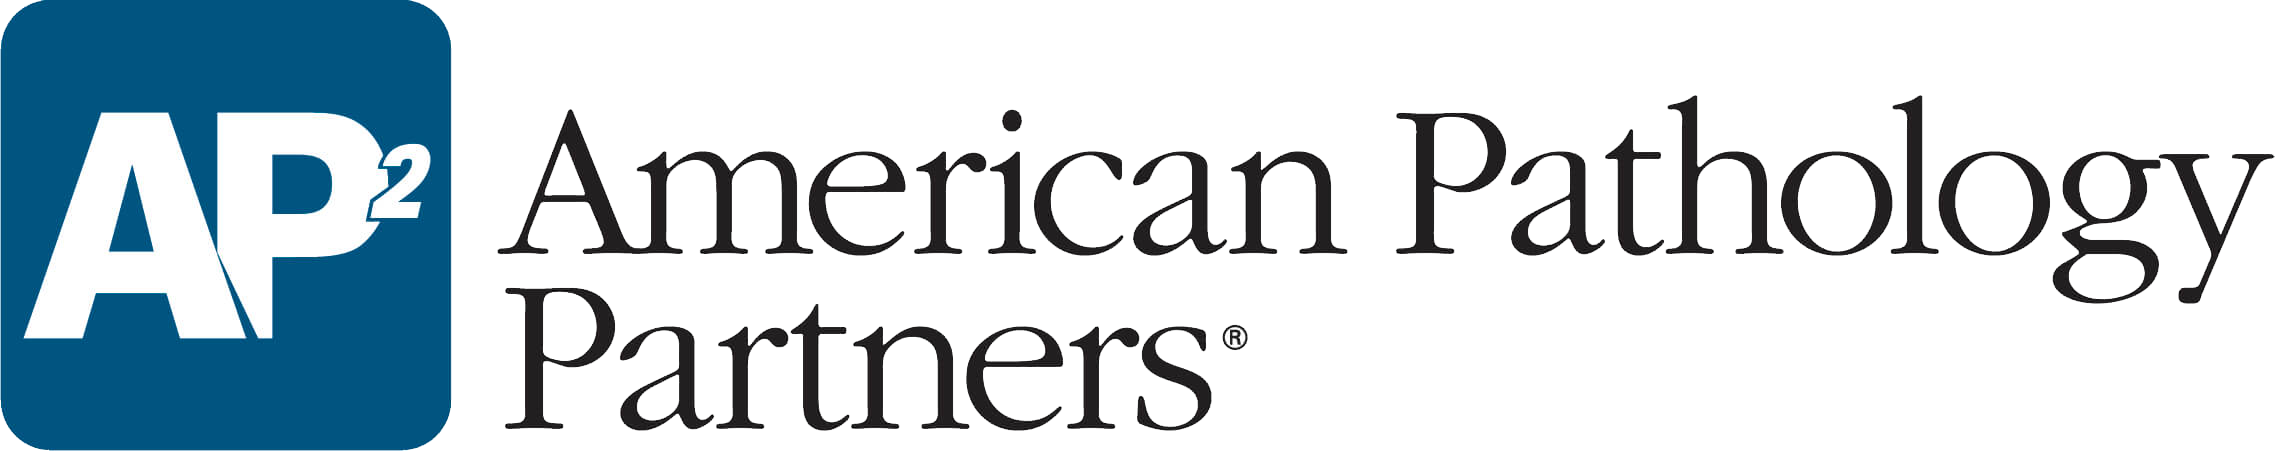 American Pathology Partners logo